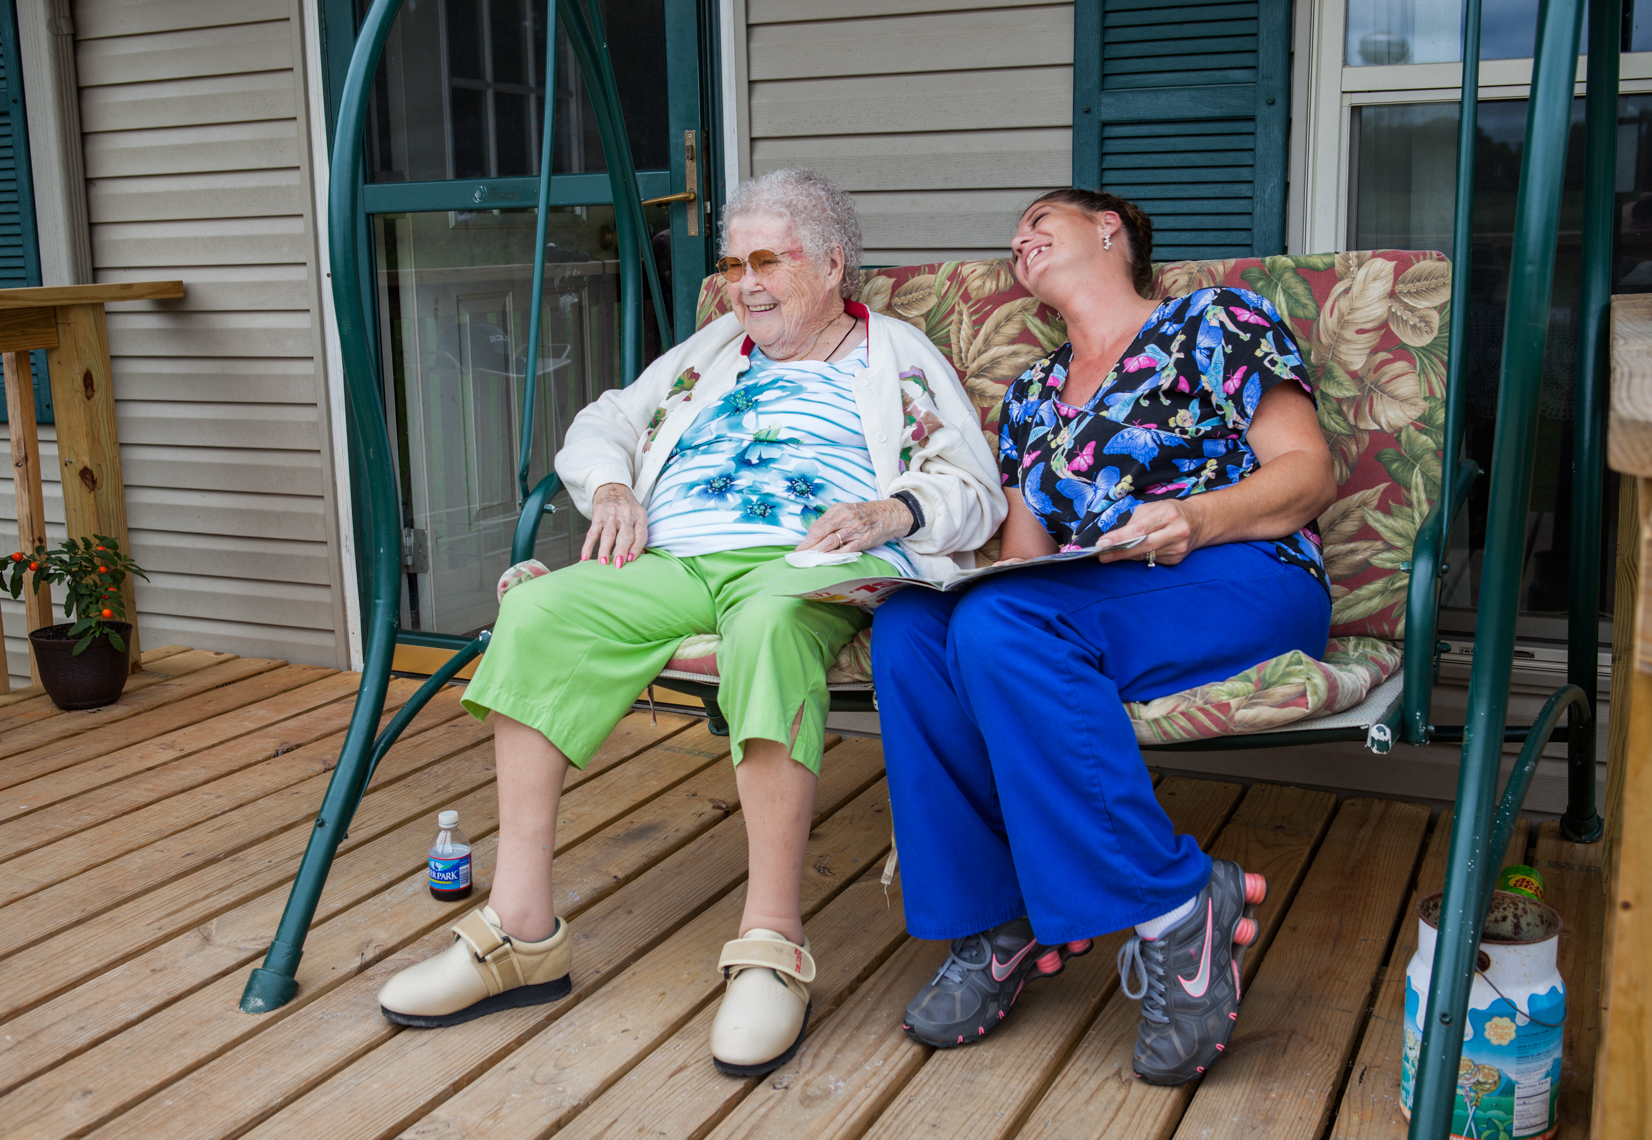 Elderly woman and her caregiver on a porch swing. Laughing, togetherness, happy.